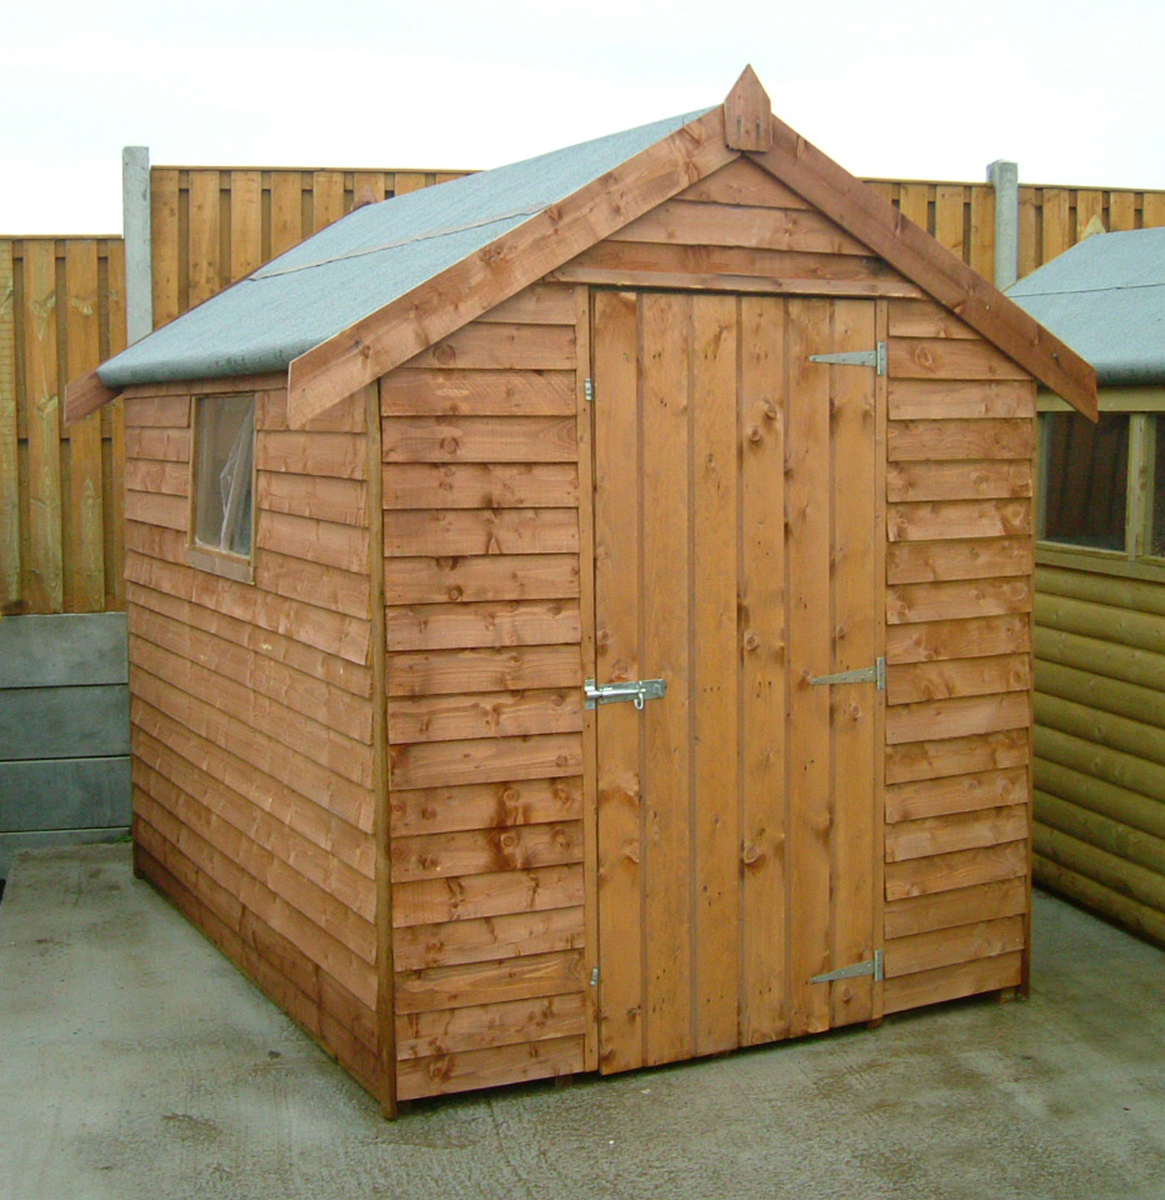 garden sheds gorey house decoration design ideas is the new way - Garden Sheds Galway